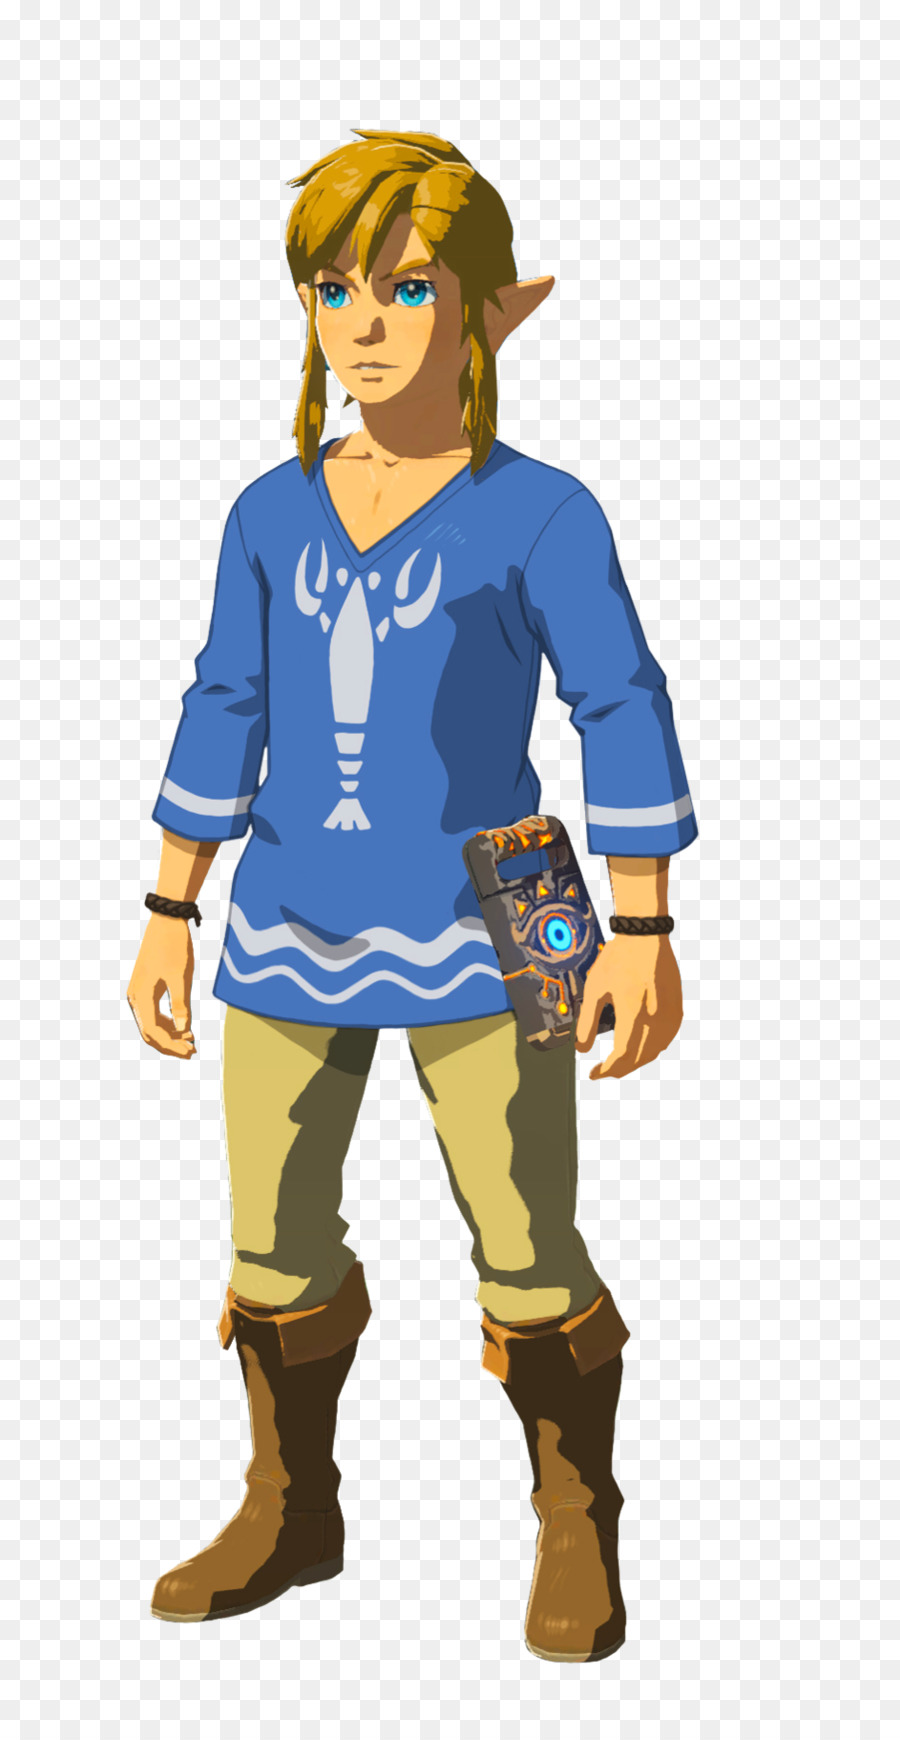 medium resolution of breath of the wild lobster shirt clipart the champions ballad the legend of zelda